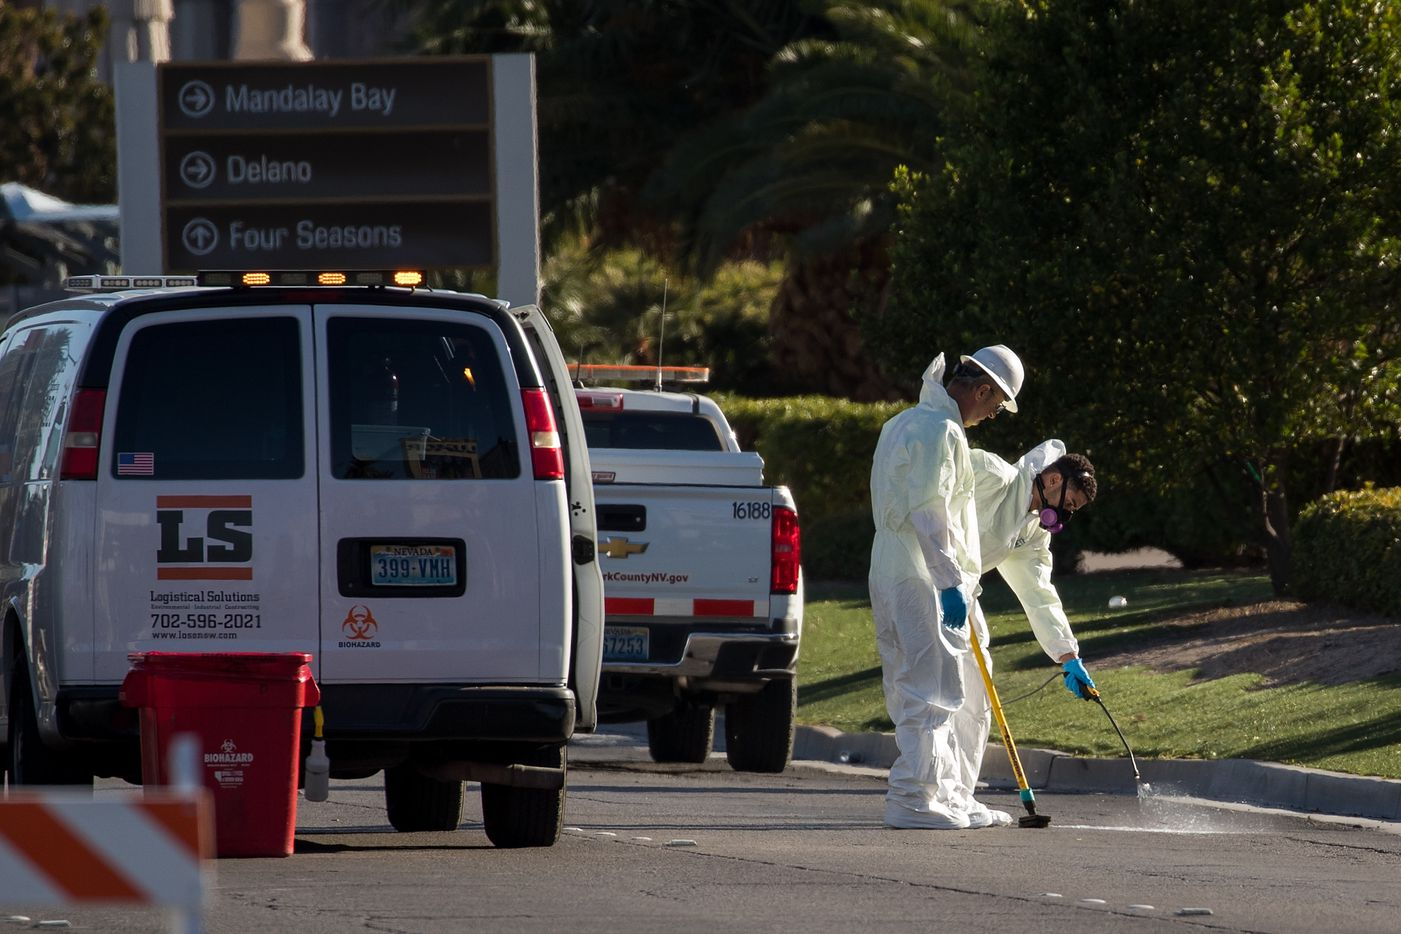 LAS VEGAS, NV - OCTOBER 3: Hazardous material clean-up workers scrub the street on Las Vegas Blvd. outside the Route 91 Harvest Festival grounds, October 3, 2017 in Las Vegas, Nevada.  Late Sunday night, a lone gunman killed over 50 people and injured over 500 people after he opened fire on a large crowd at the Route 91 Harvest country music festival. The massacre is one of the deadliest mass shooting events in U.S. history. (Photo by Drew Angerer/Getty Images)